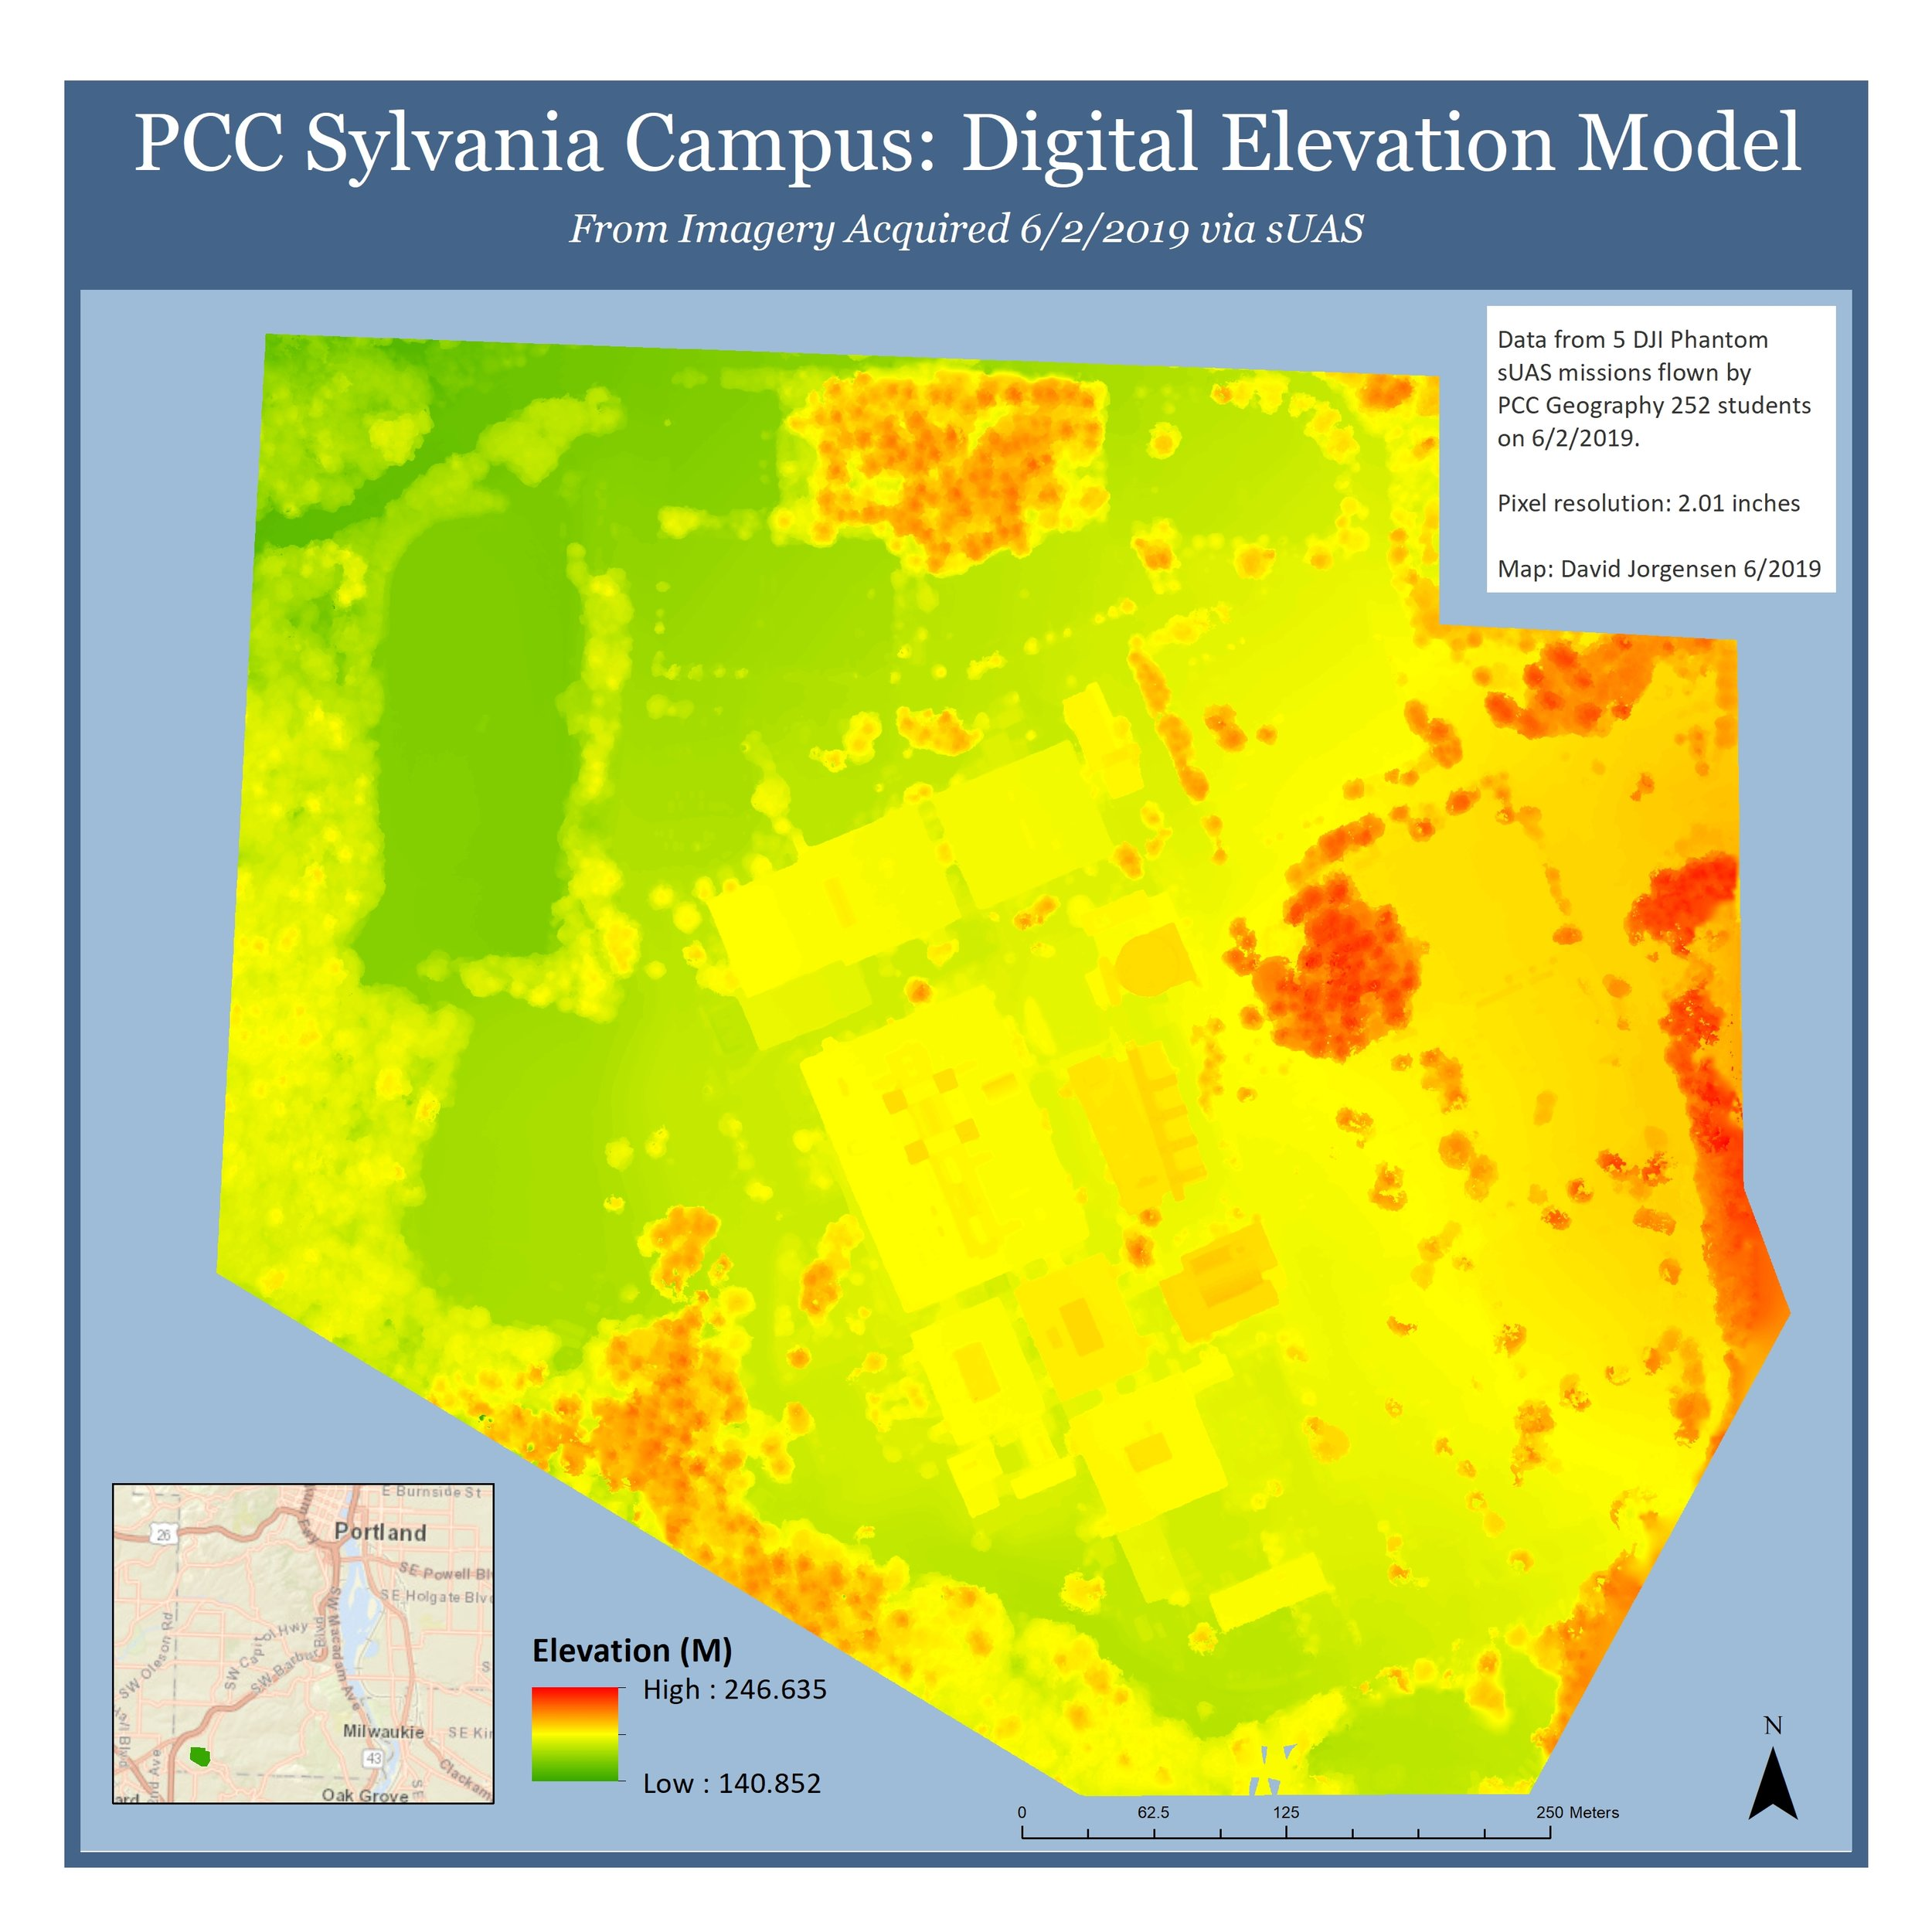 PCC Sylvania Digital Elevation Model